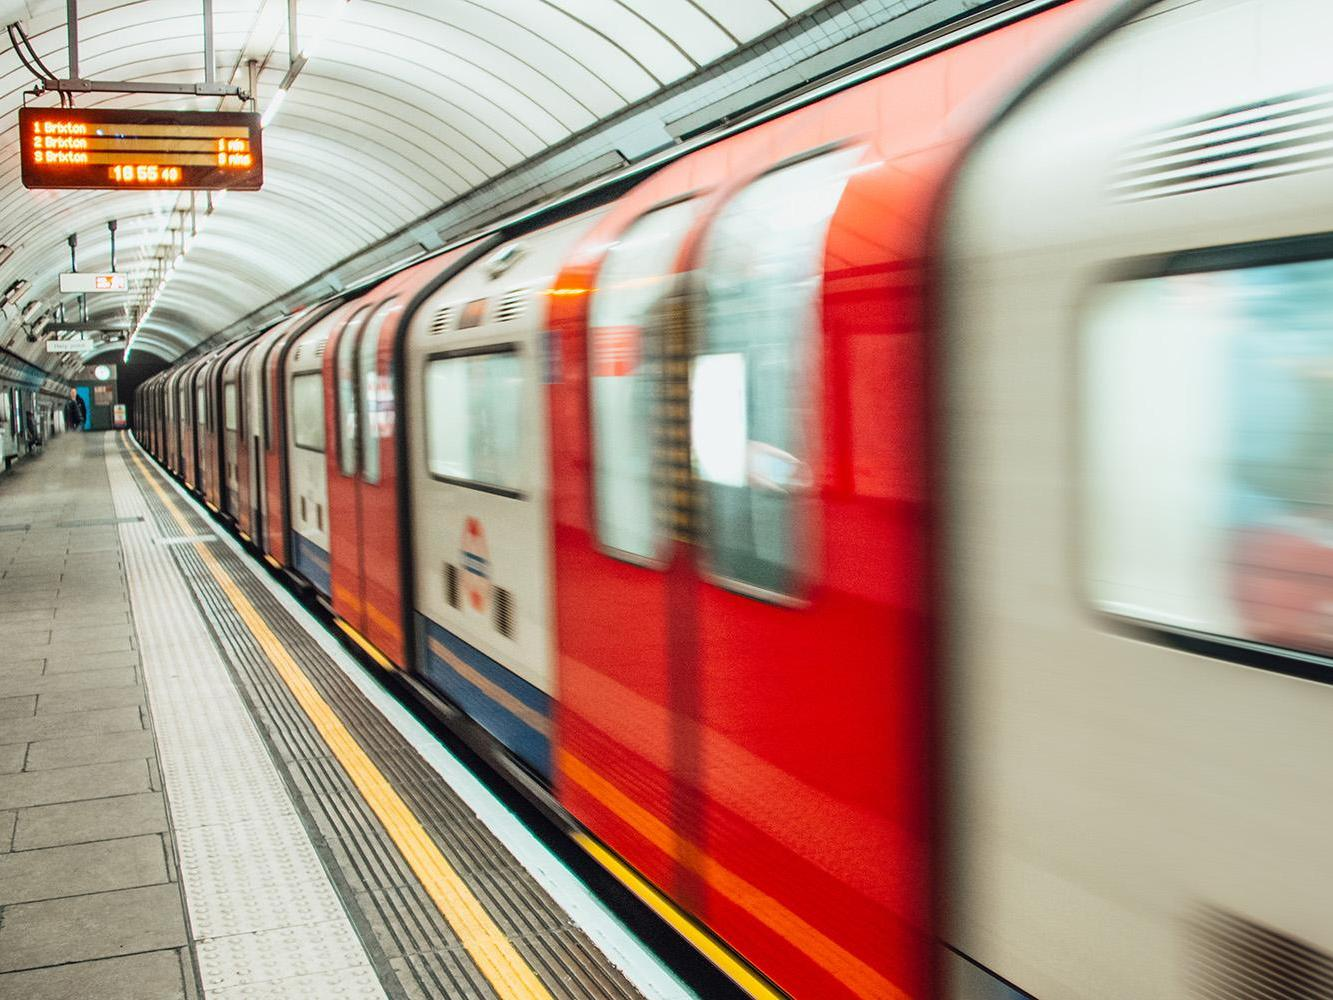 Christmas travel guide: How to get around London during the festive period